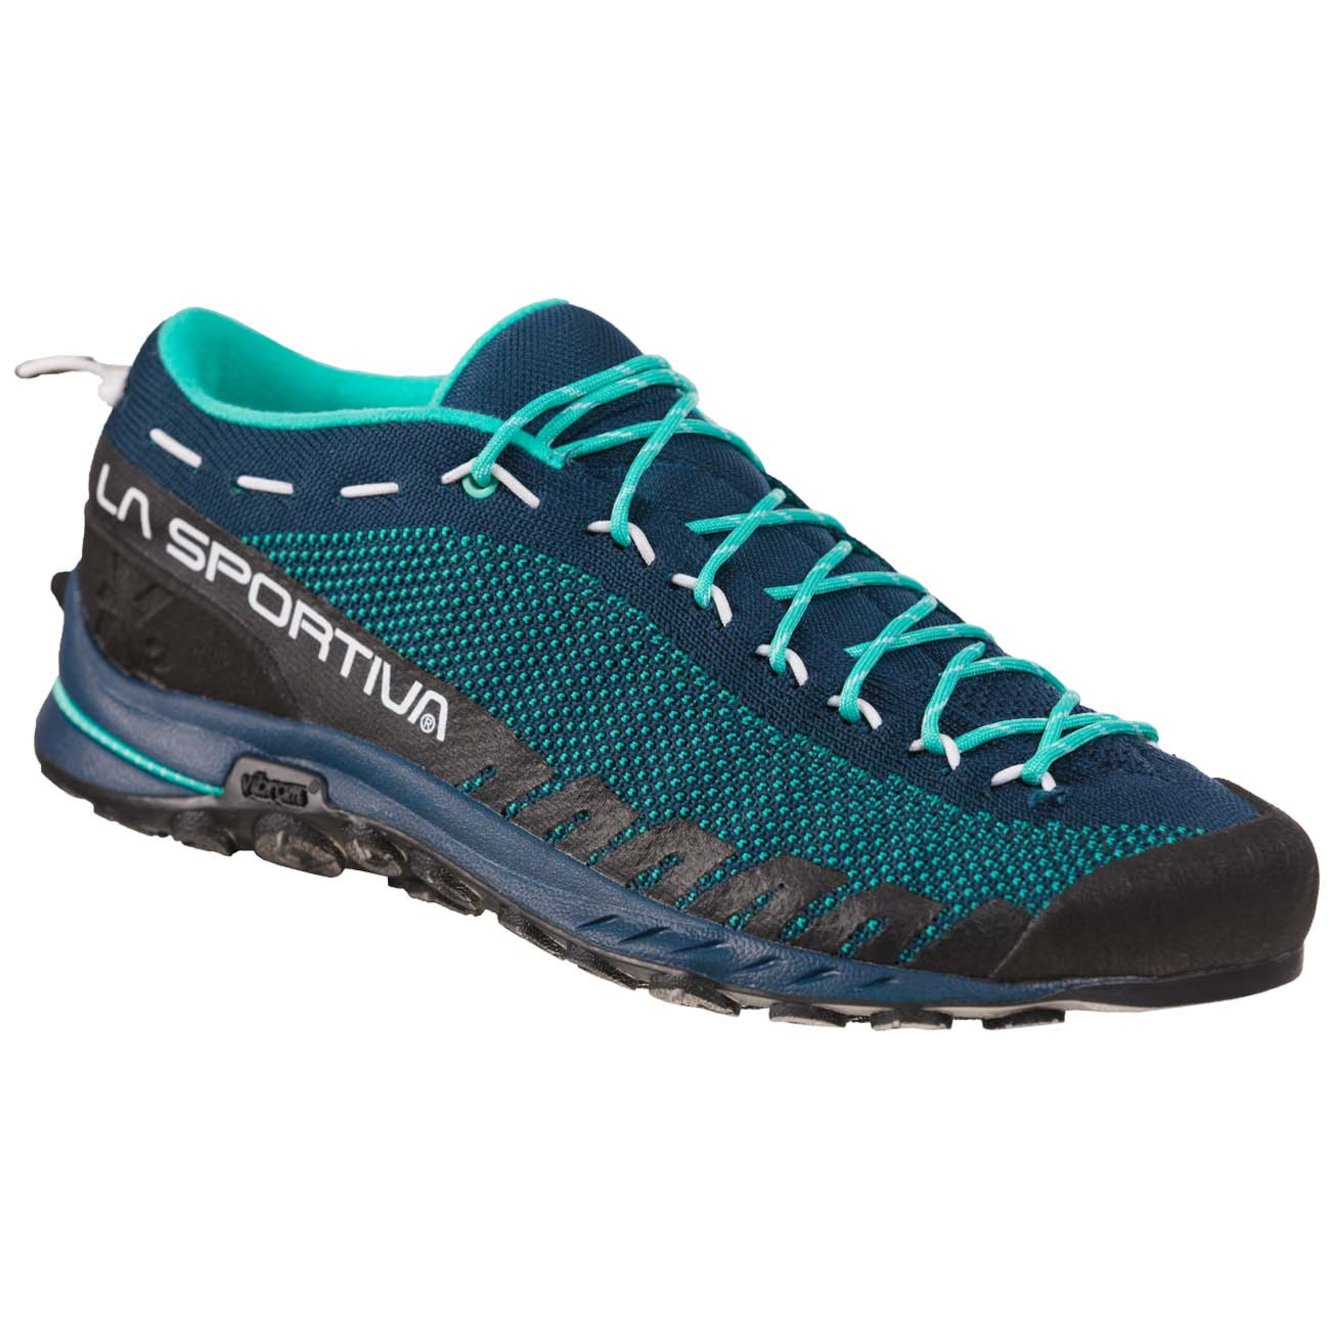 La Sportiva Tx2 Womens approach shoe,  front/outer side view in blue/black colours